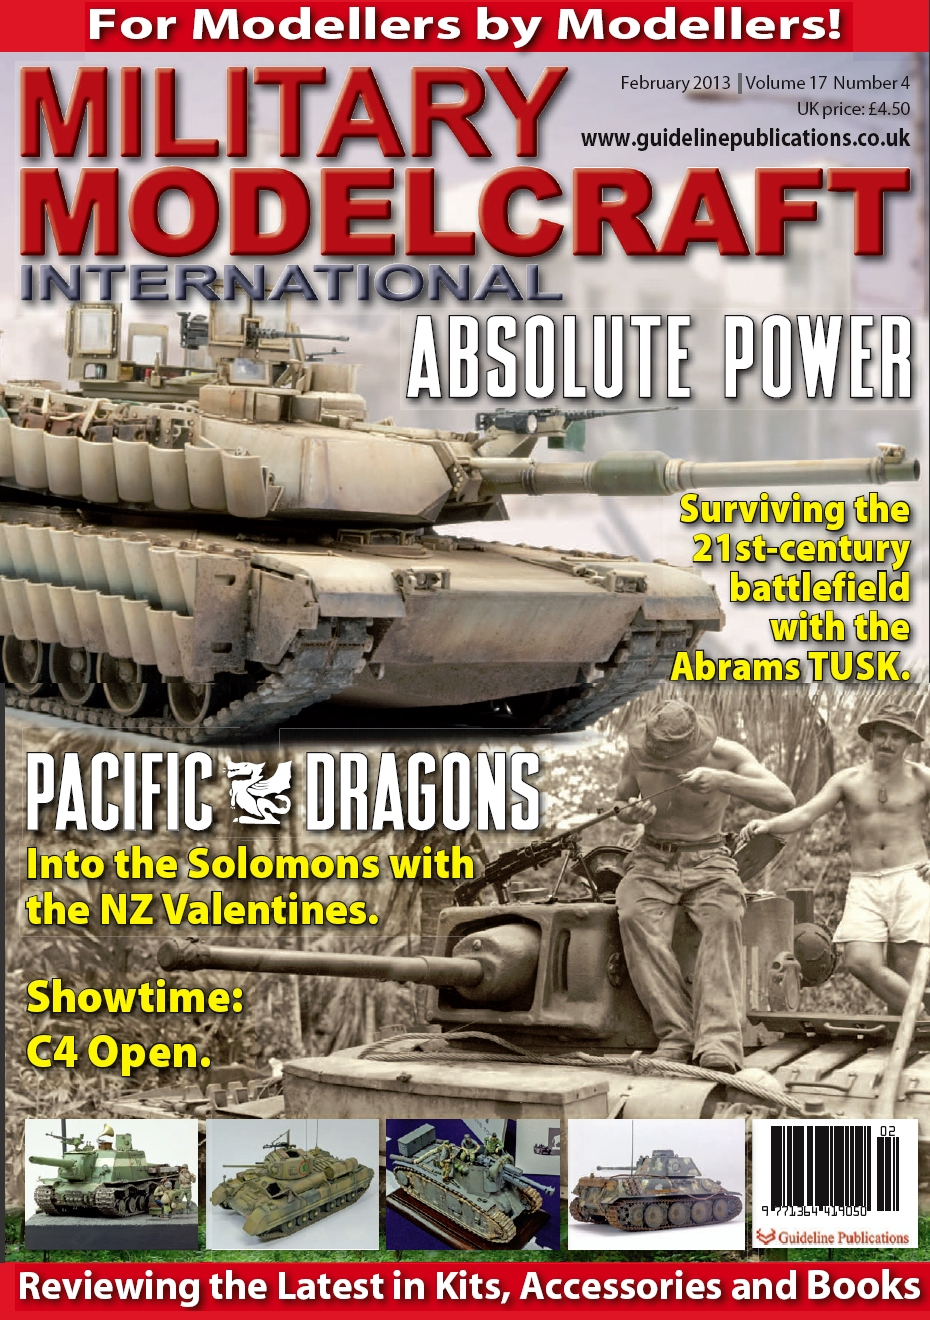 Guideline Publications Military Modelcraft February 2013 vol 17 - 4